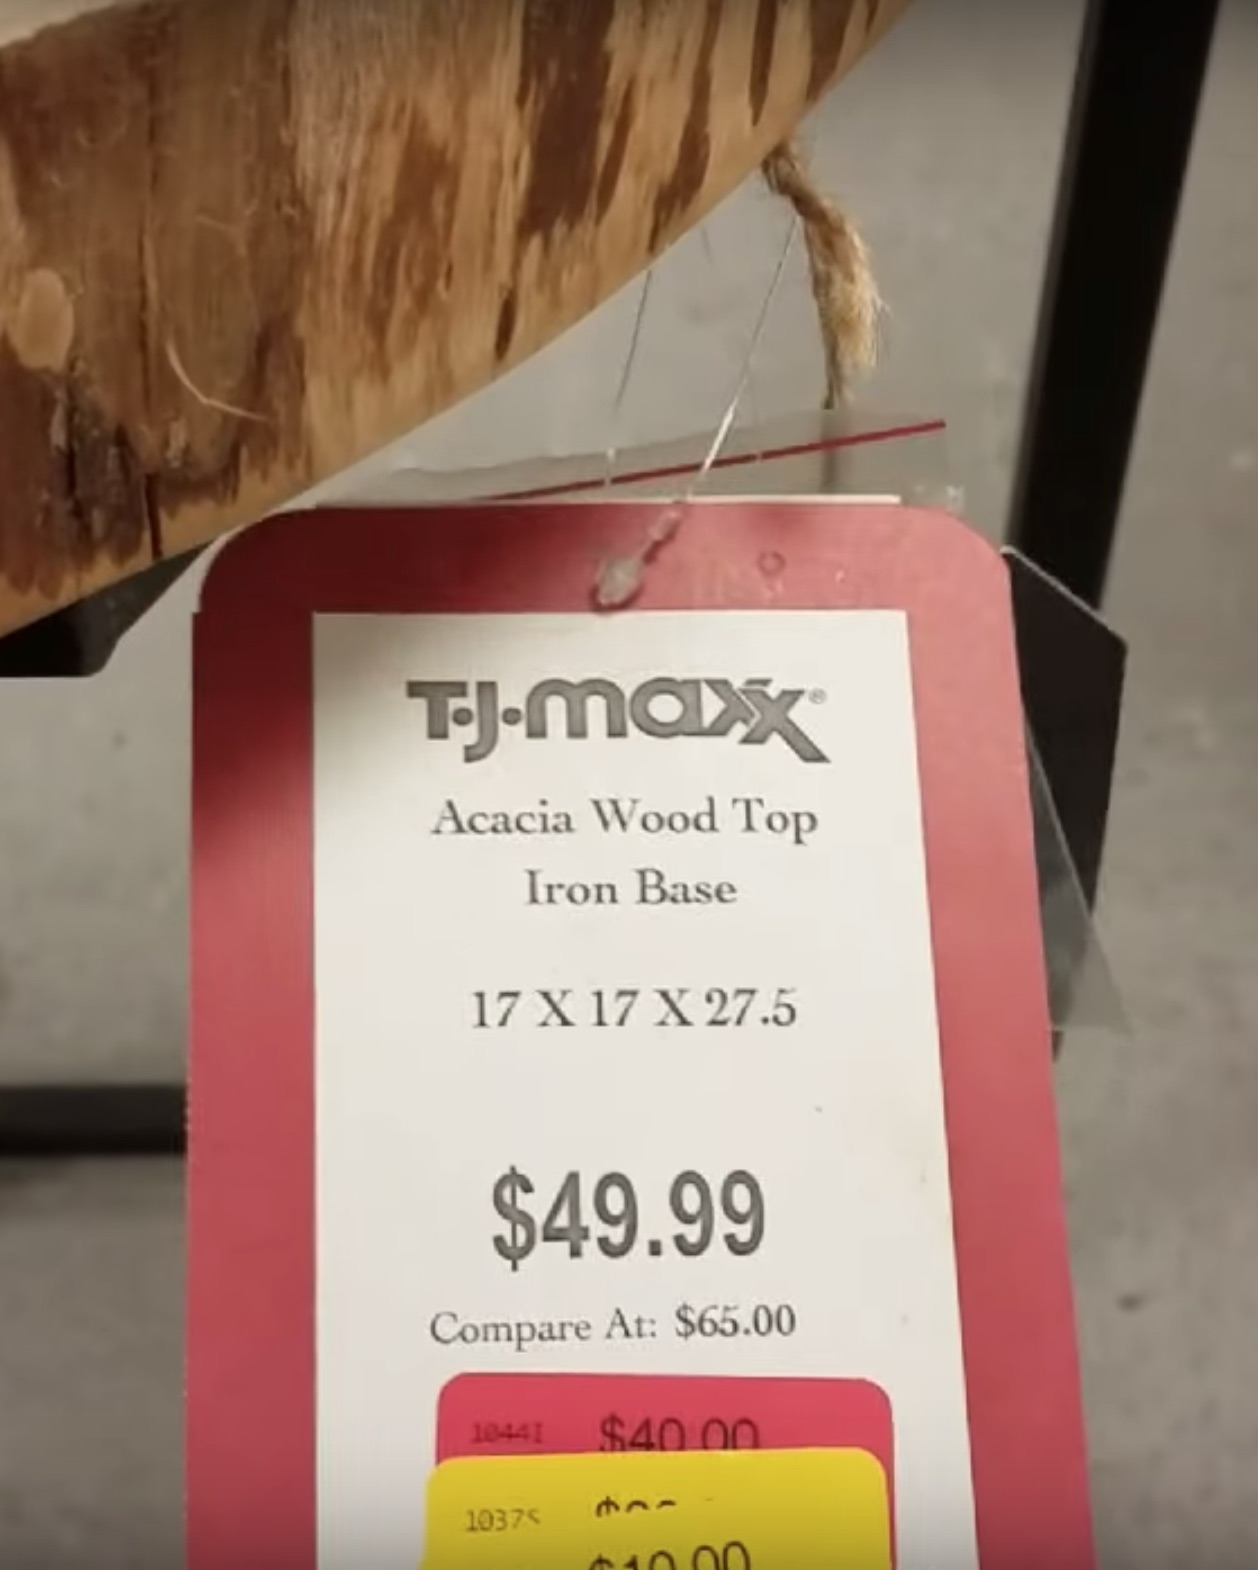 4f0dccae65d 37 T.J. Maxx Shopping Hacks That Will Save You Money